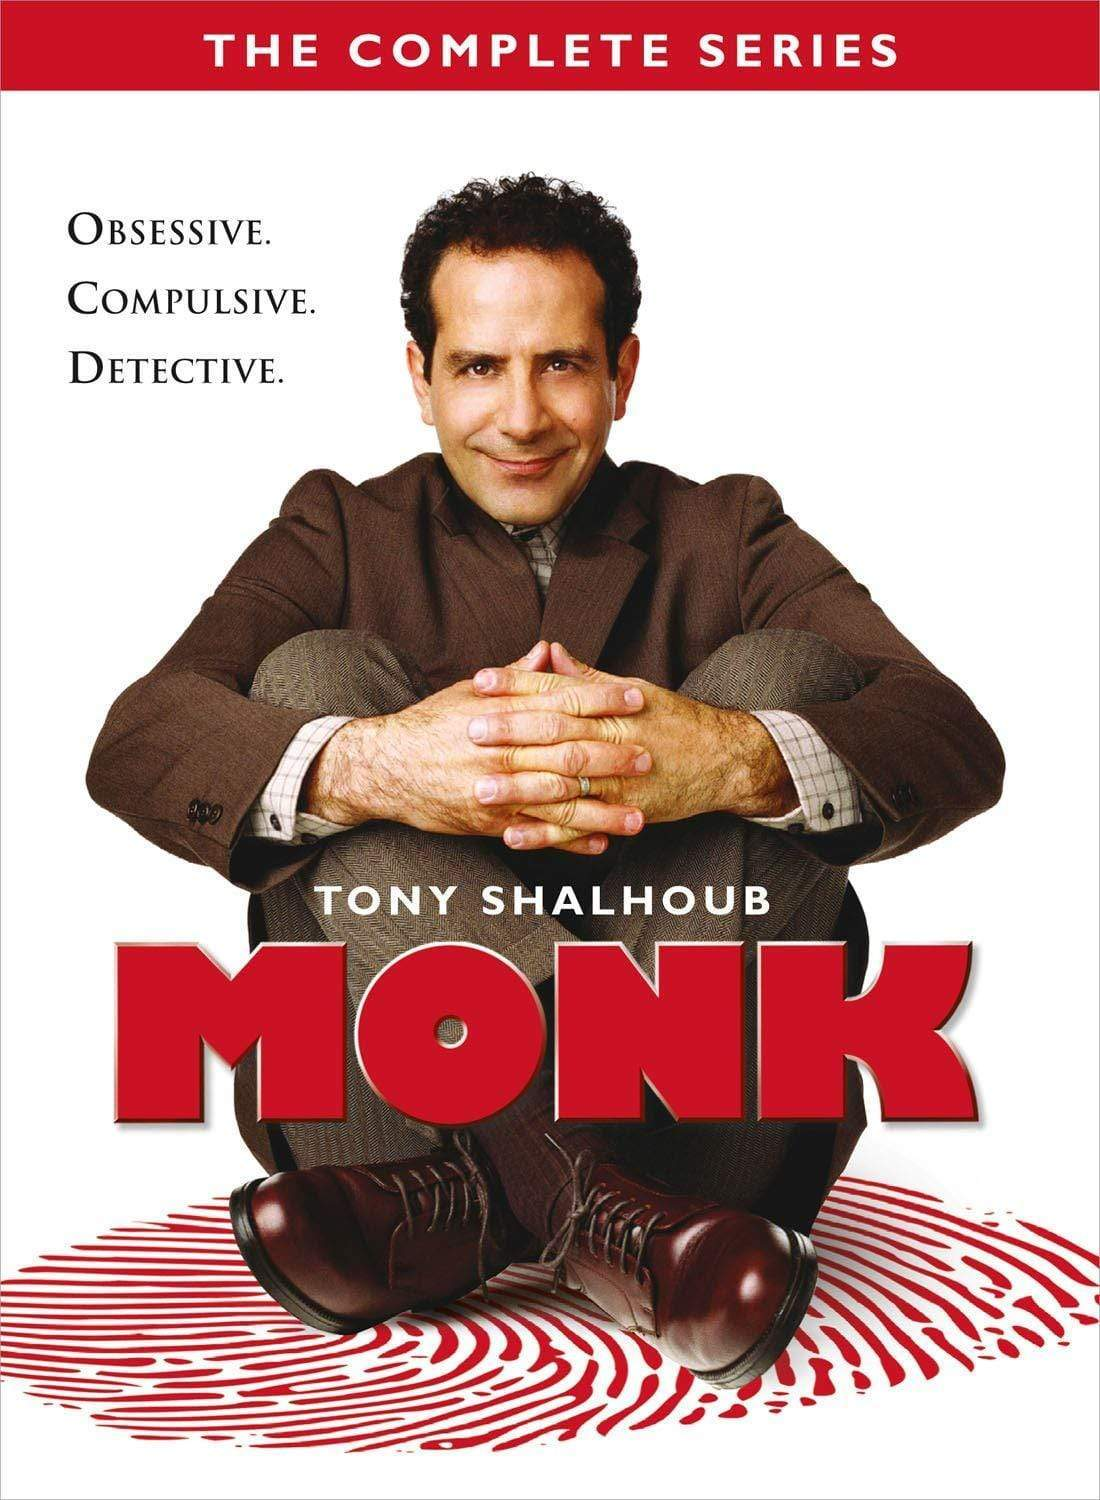 Monk DVD Complete Series Box Set Universal Studios DVDs & Blu-ray Discs > DVDs > Box Sets